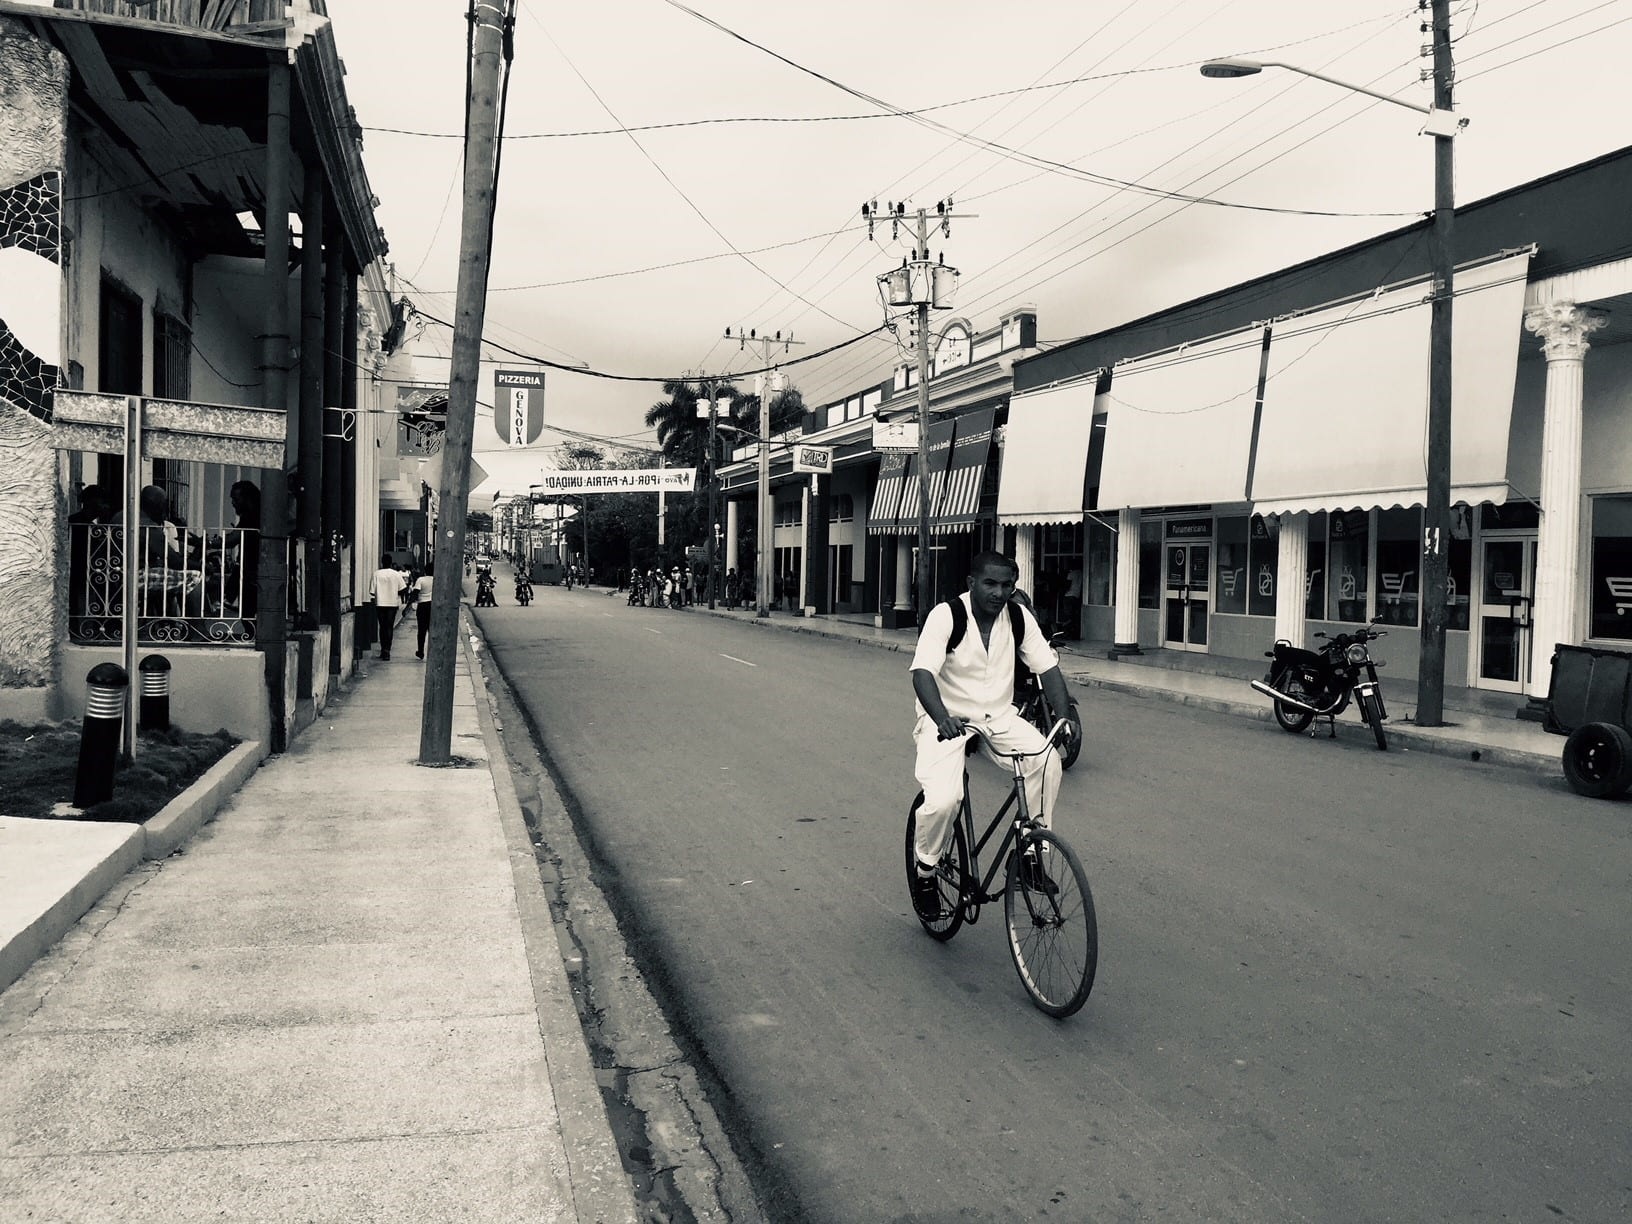 Black and white photo of person riding bicycle in middle of street in Havana, Cuba